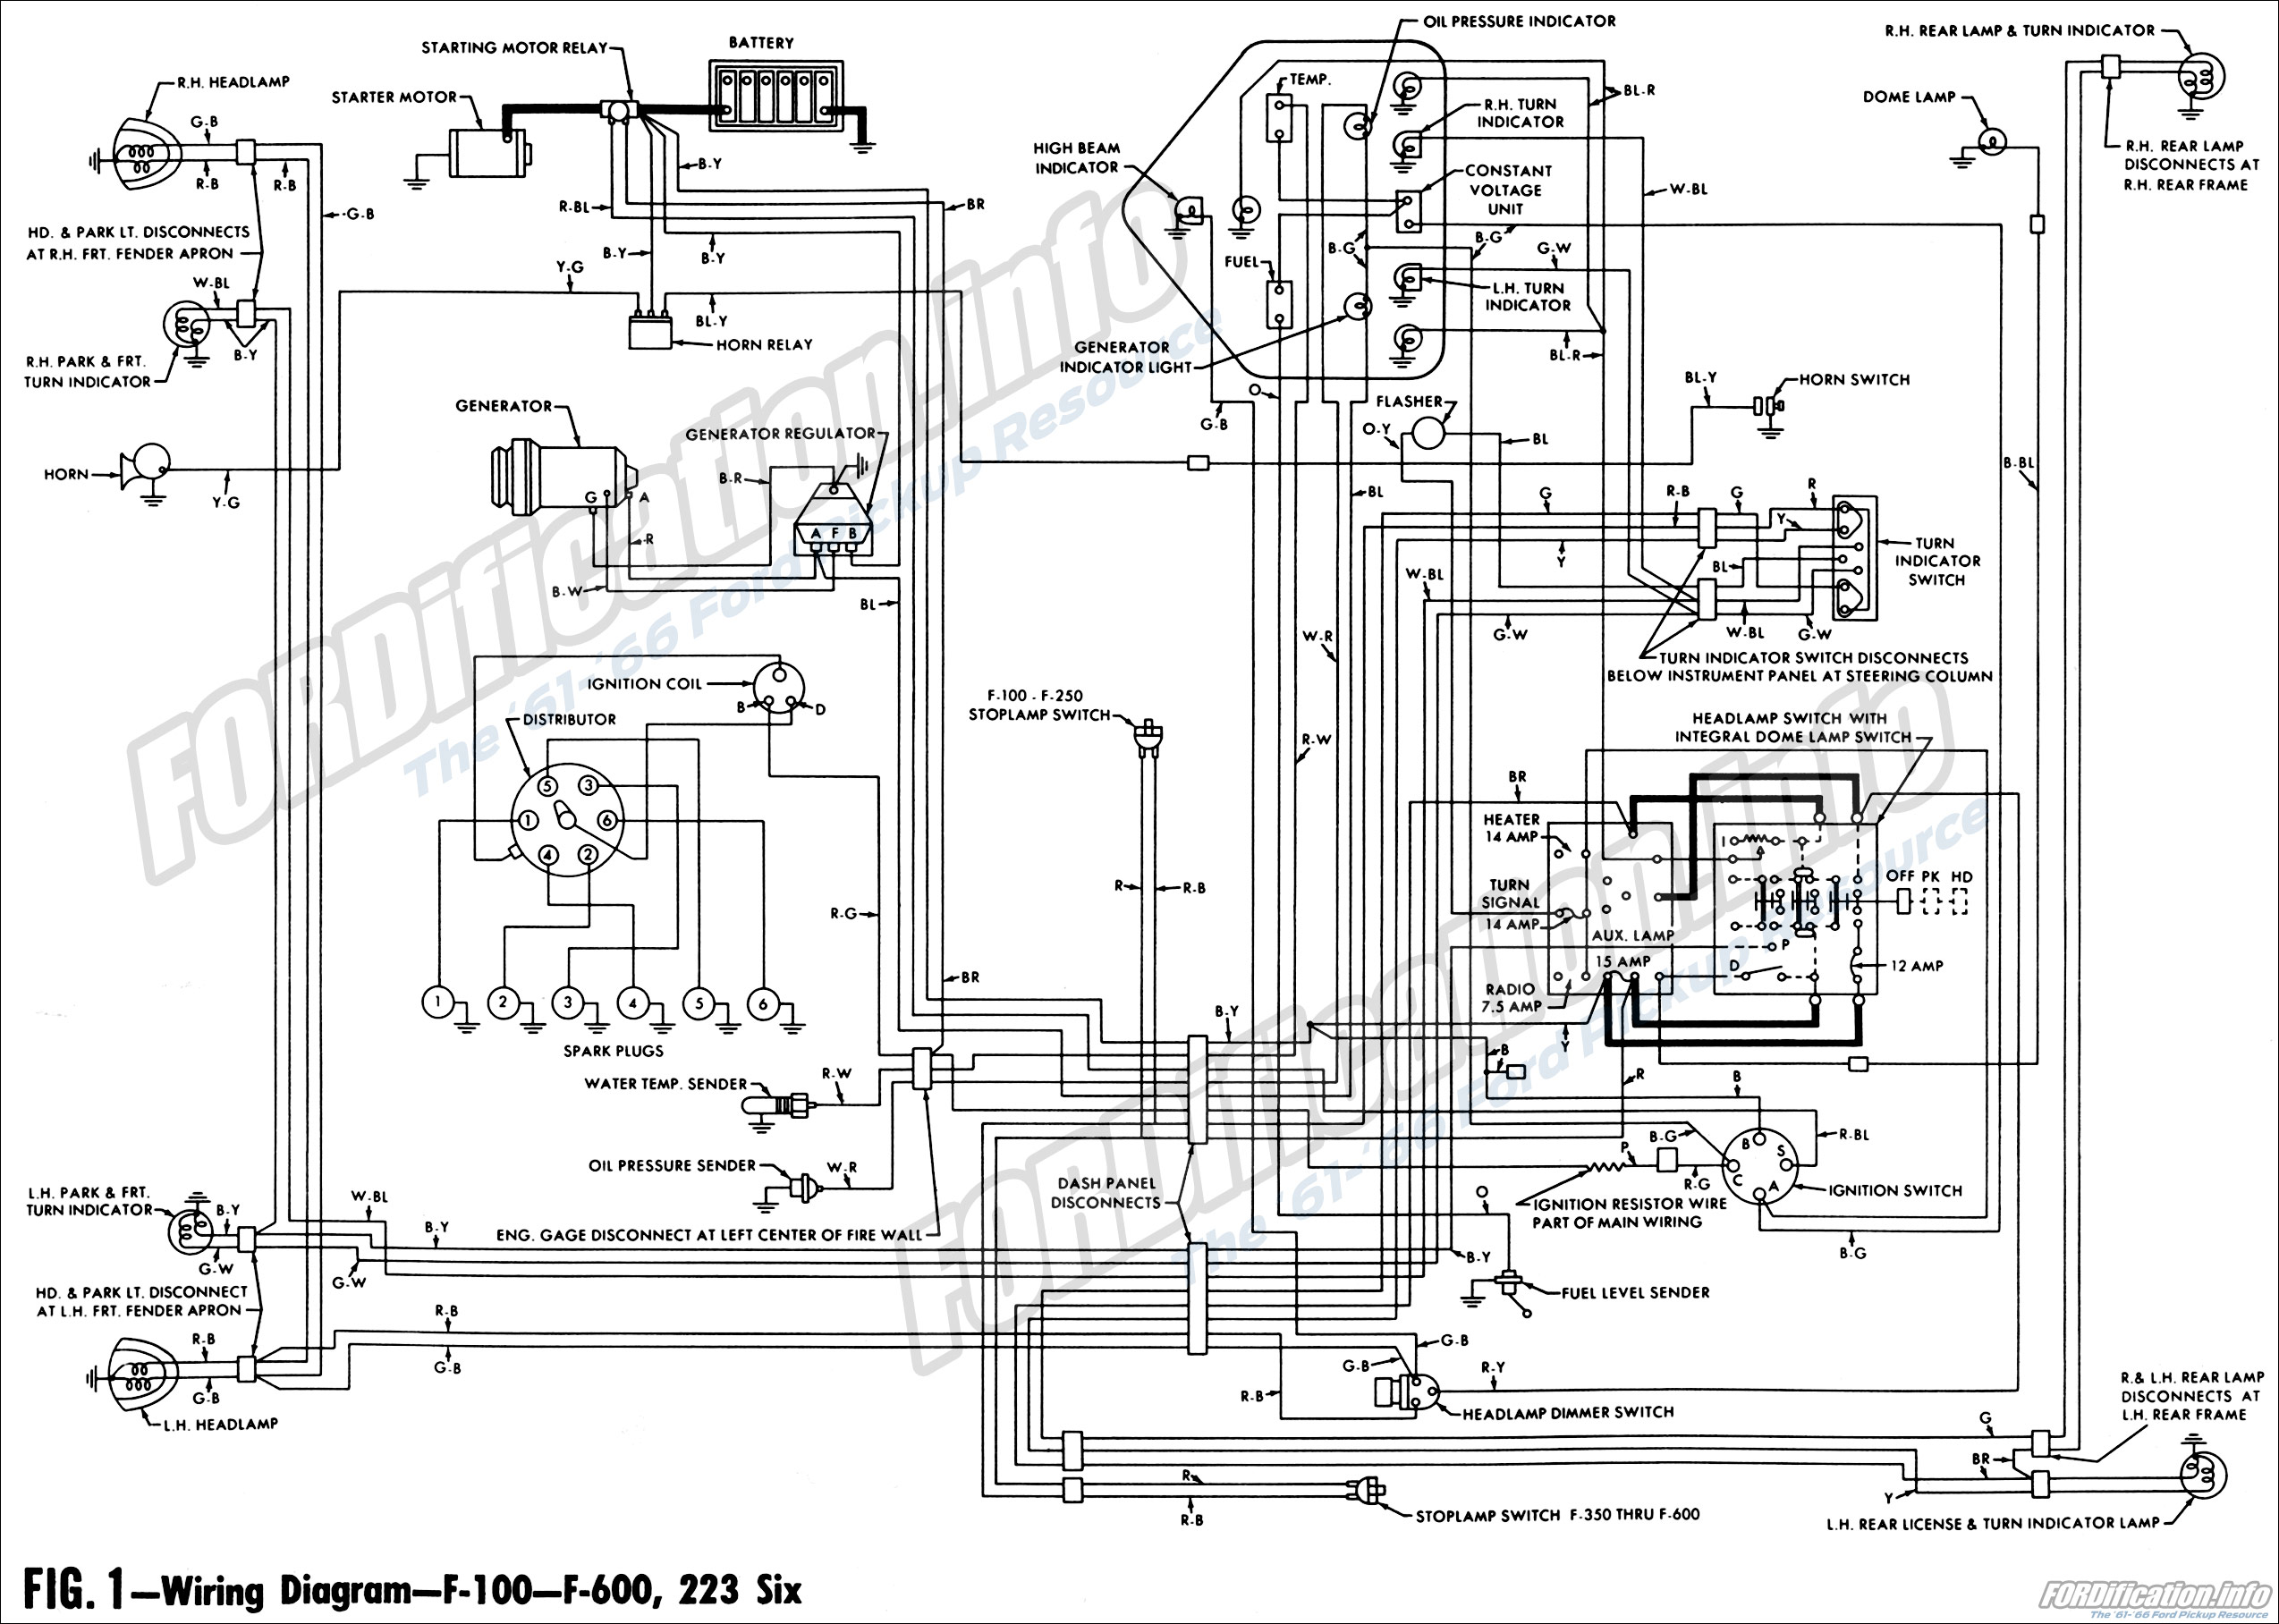 ford f600 wiring diagram diy enthusiasts wiring diagrams u2022 rh broadwaycomputers us 1980 ford f600 wiring diagram 1980 ford f600 wiring diagram